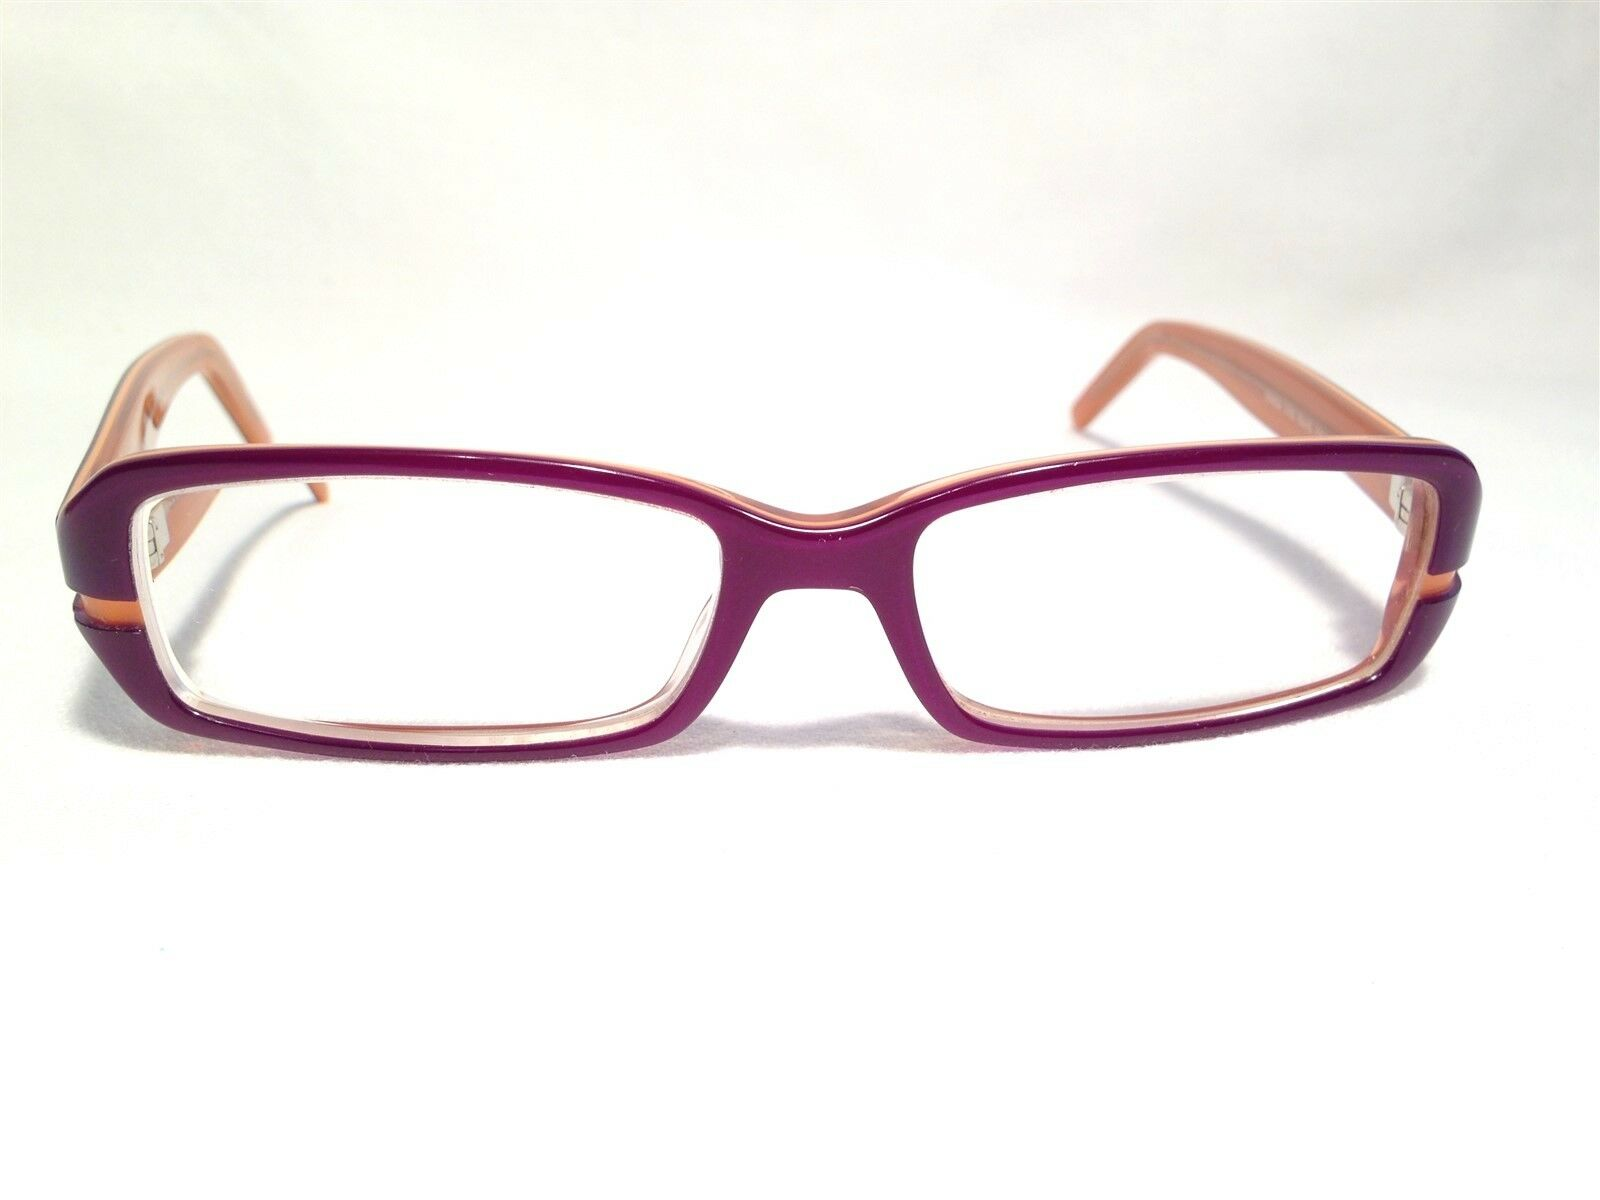 picture 1 of 7 - Dkny Frames